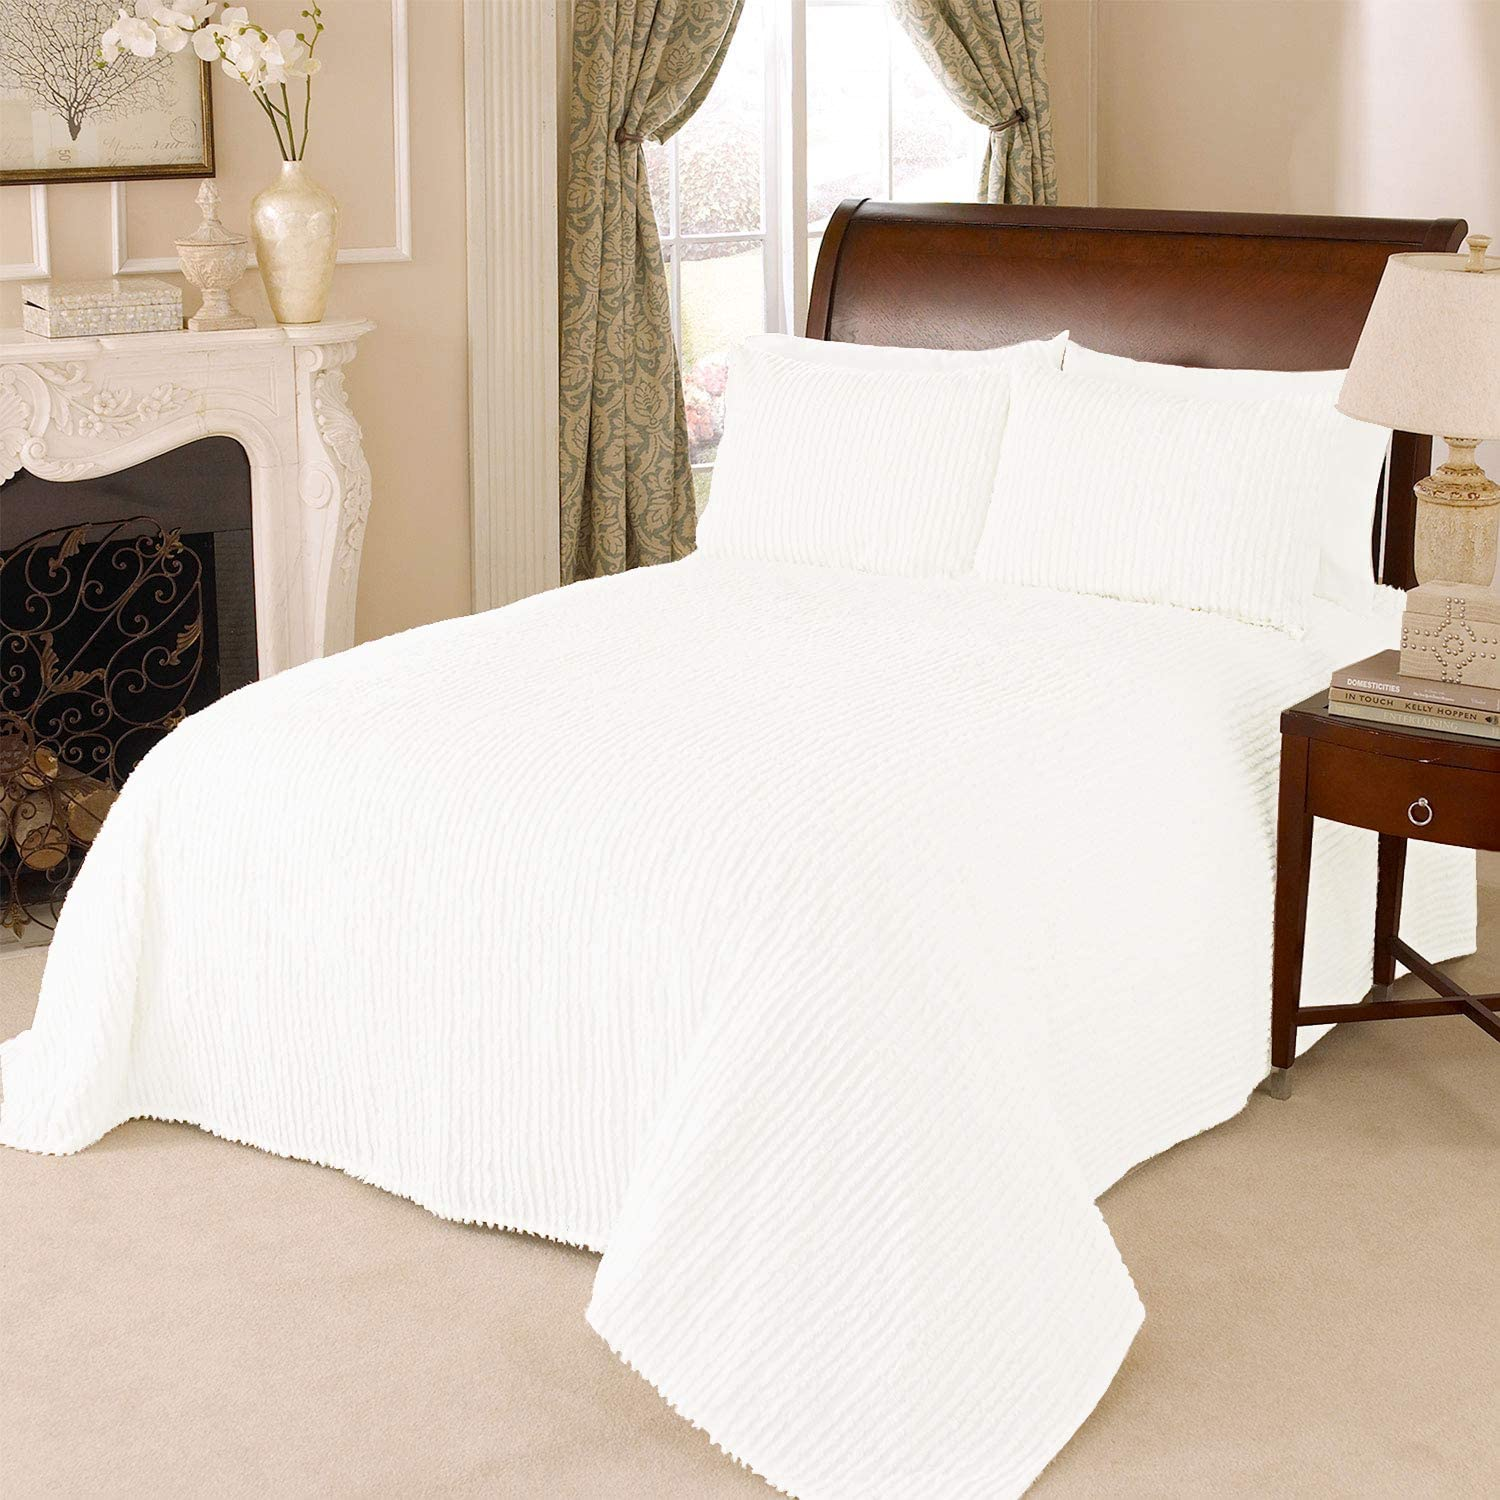 Beatrice Home Fashions Channel Chenille Bedspread, Full, White